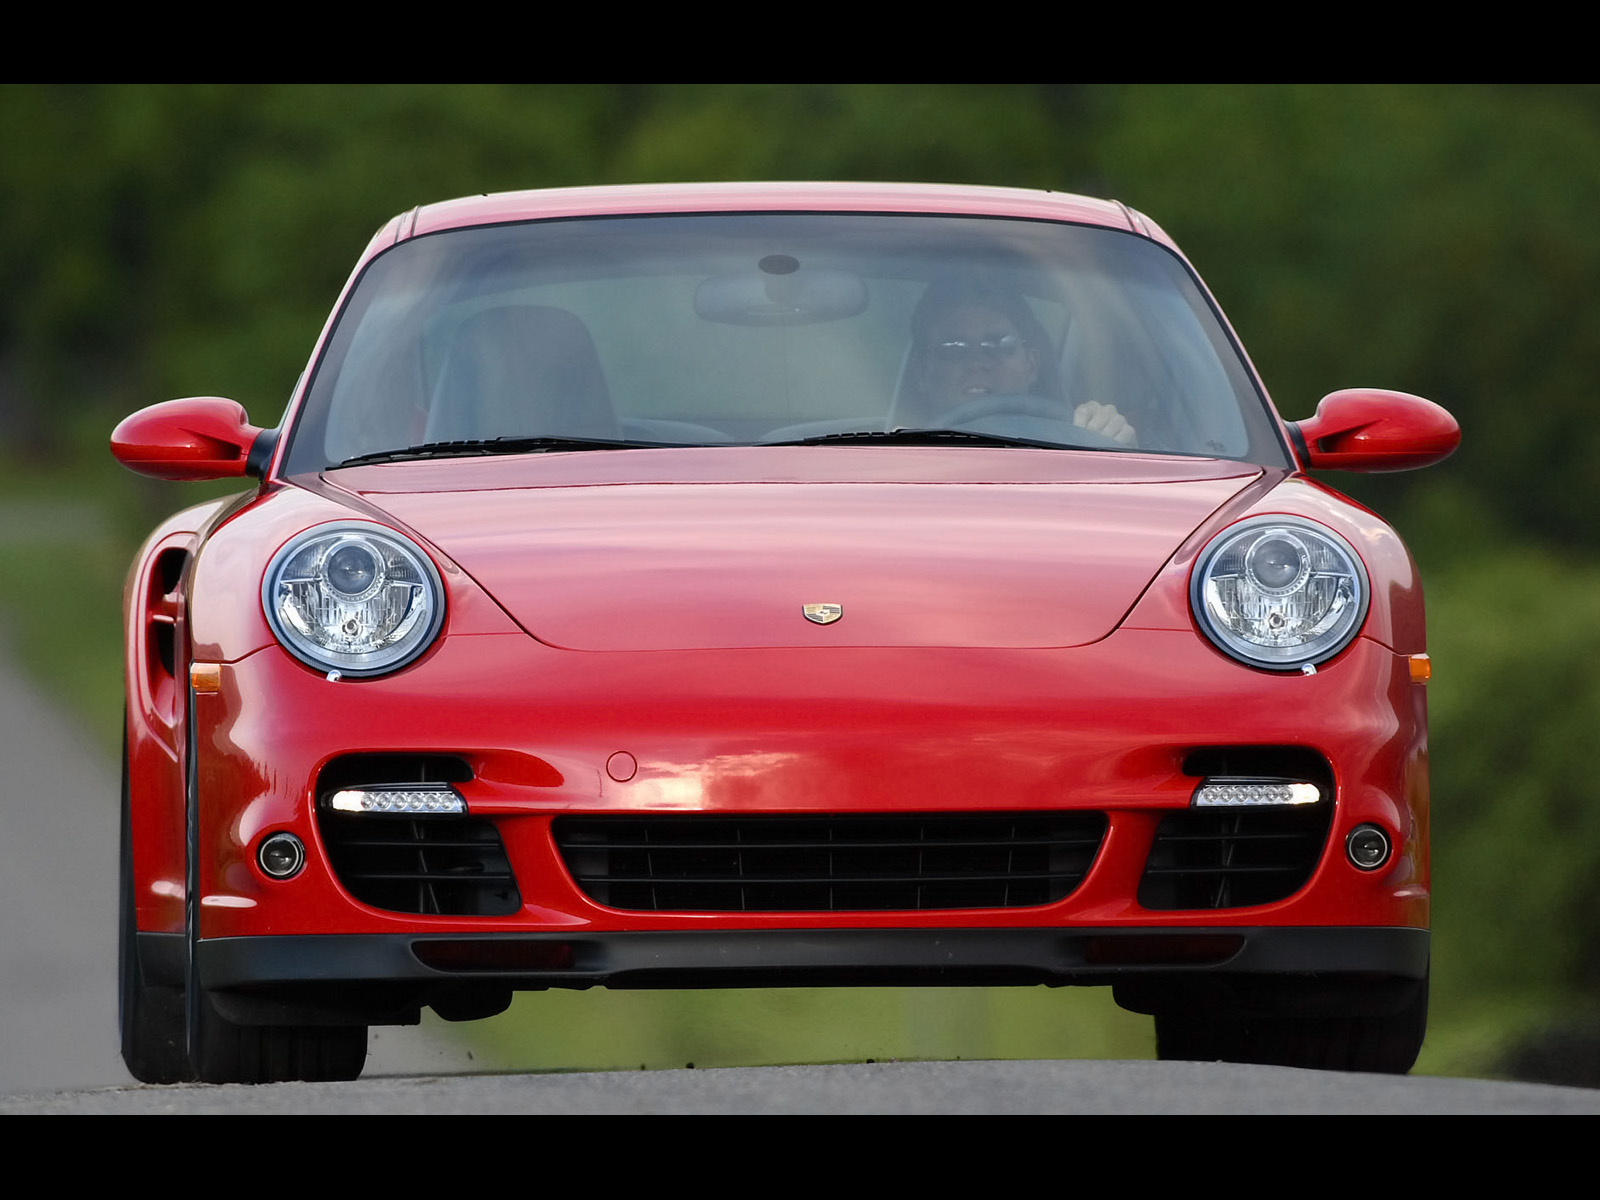 Porsche 911 Turbo 996 Picture 44603 Porsche Photo Gallery Carsbase Com